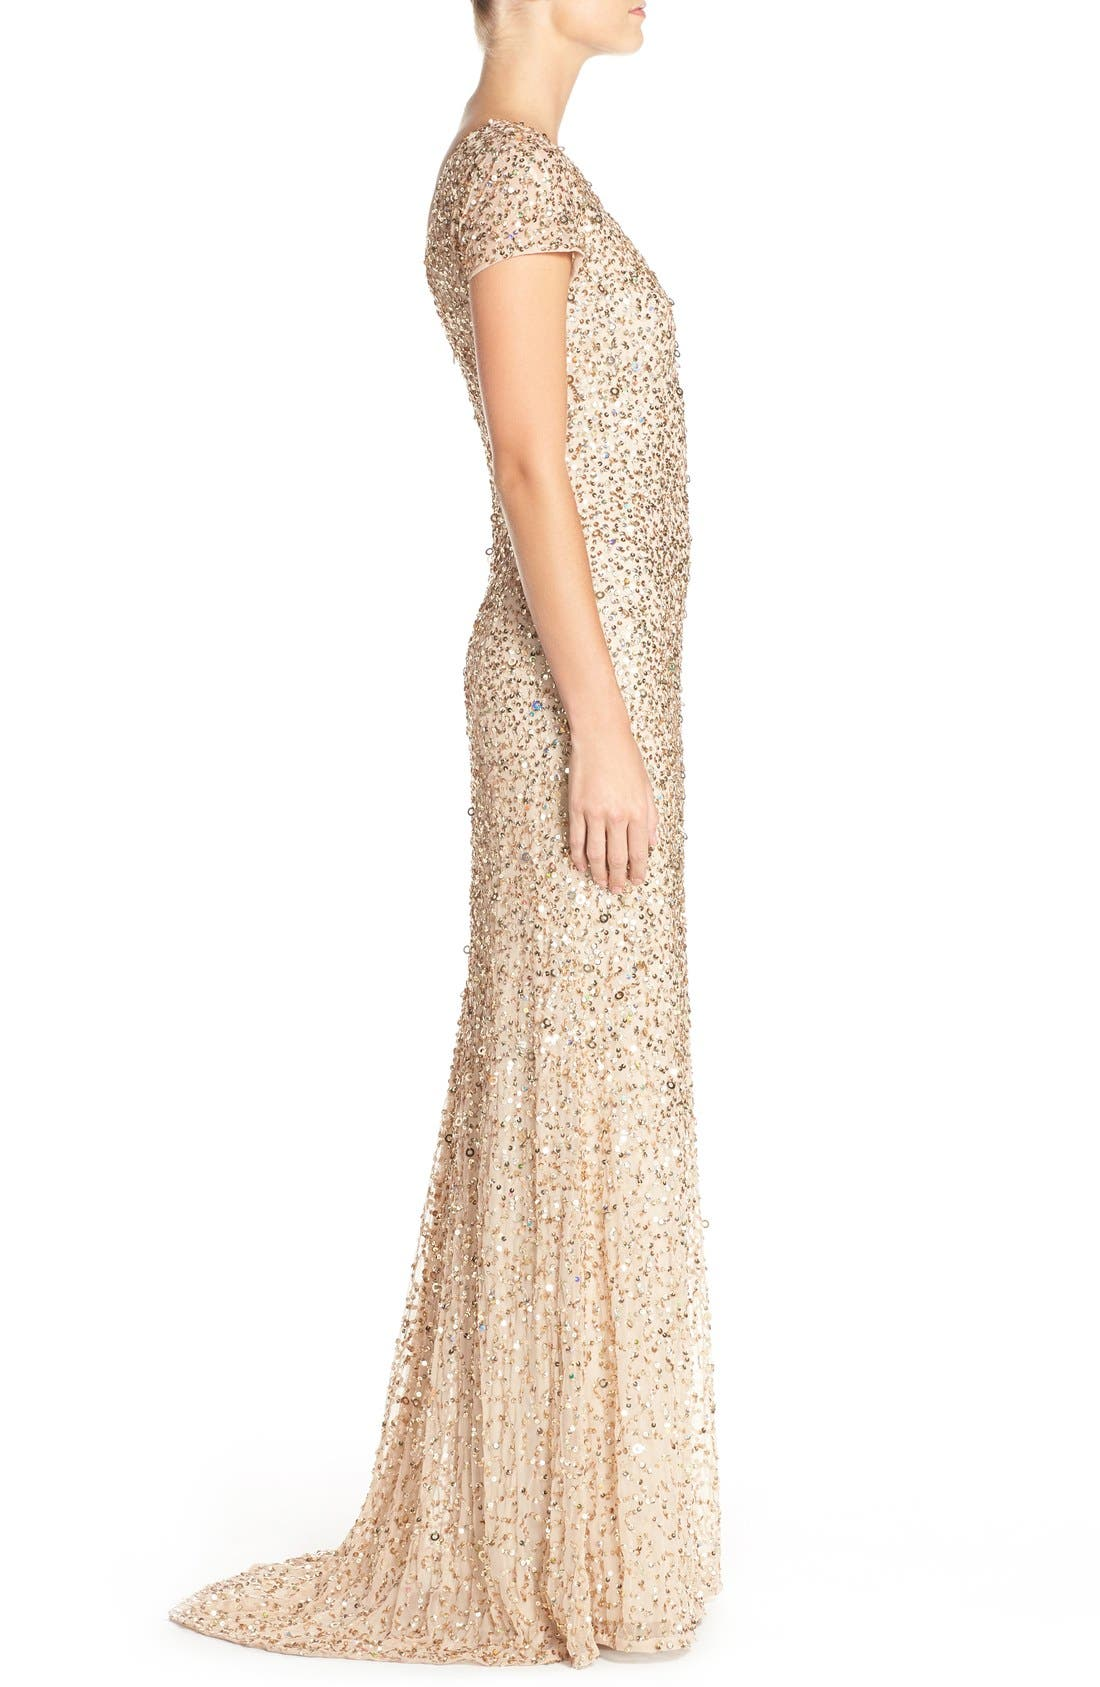 Short Sleeve Sequin Mesh Gown,                             Alternate thumbnail 10, color,                             CHAMPAGNE/ GOLD